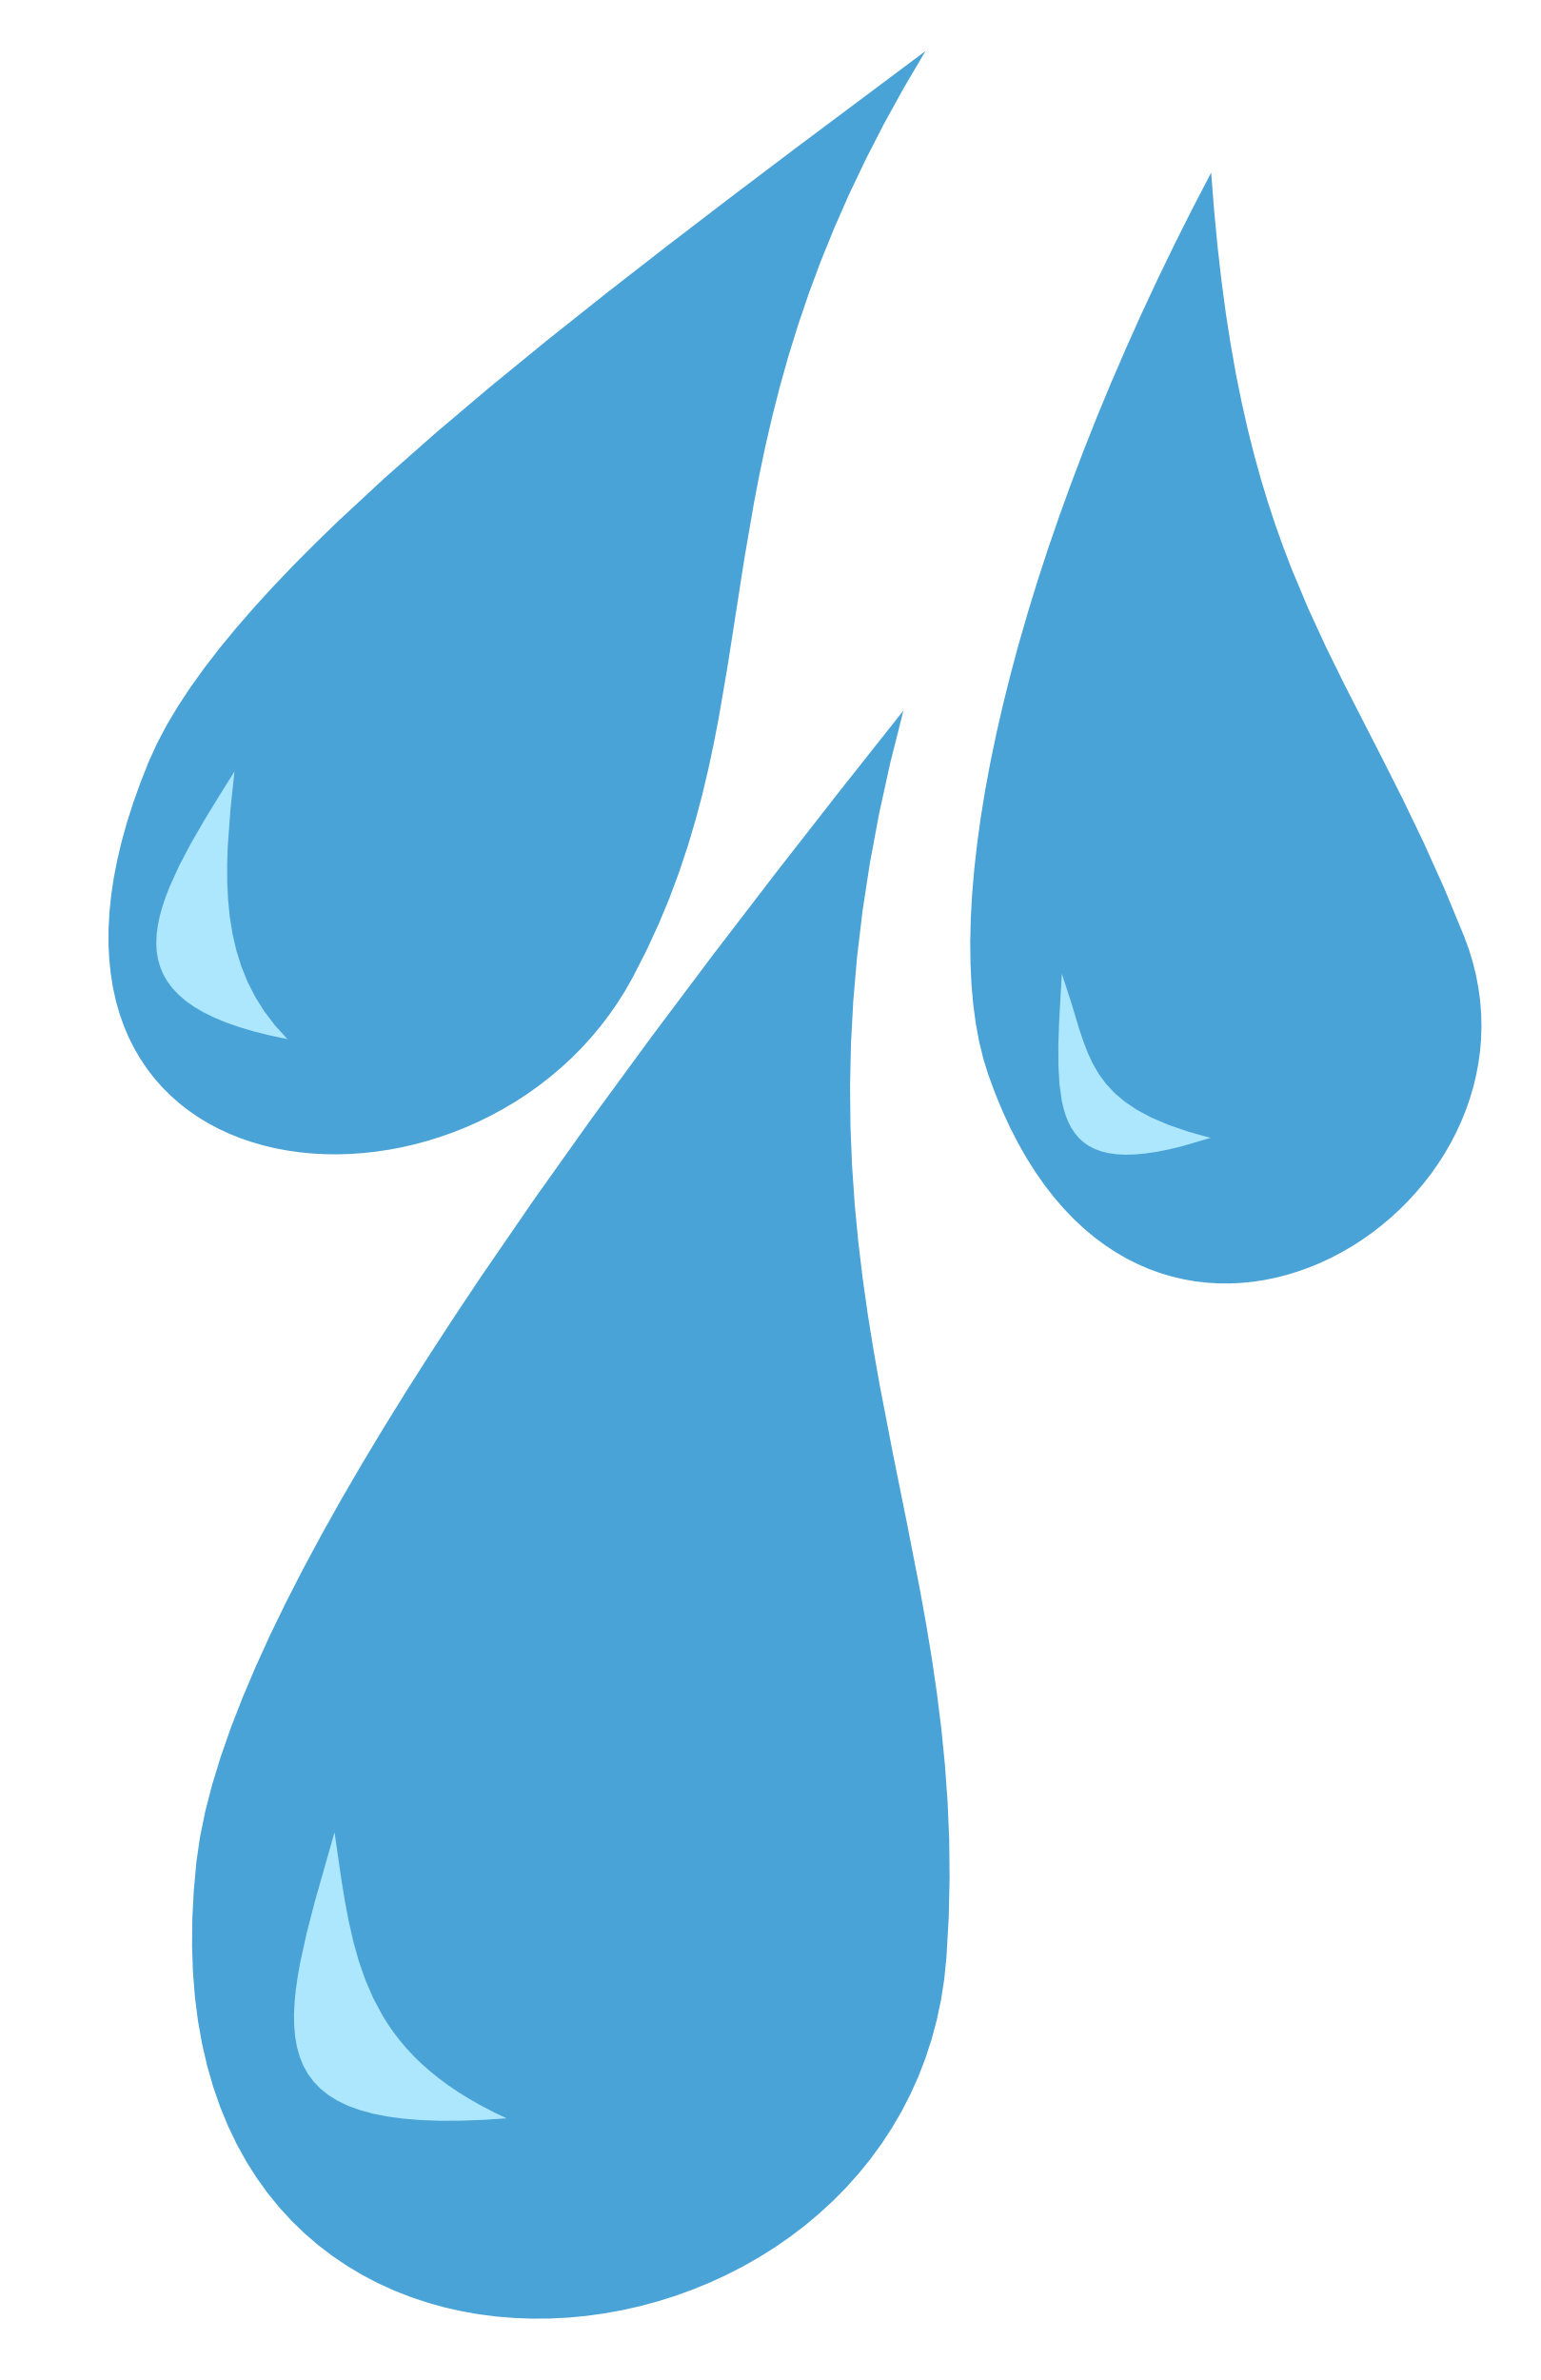 collection of rain. Water clipart vector